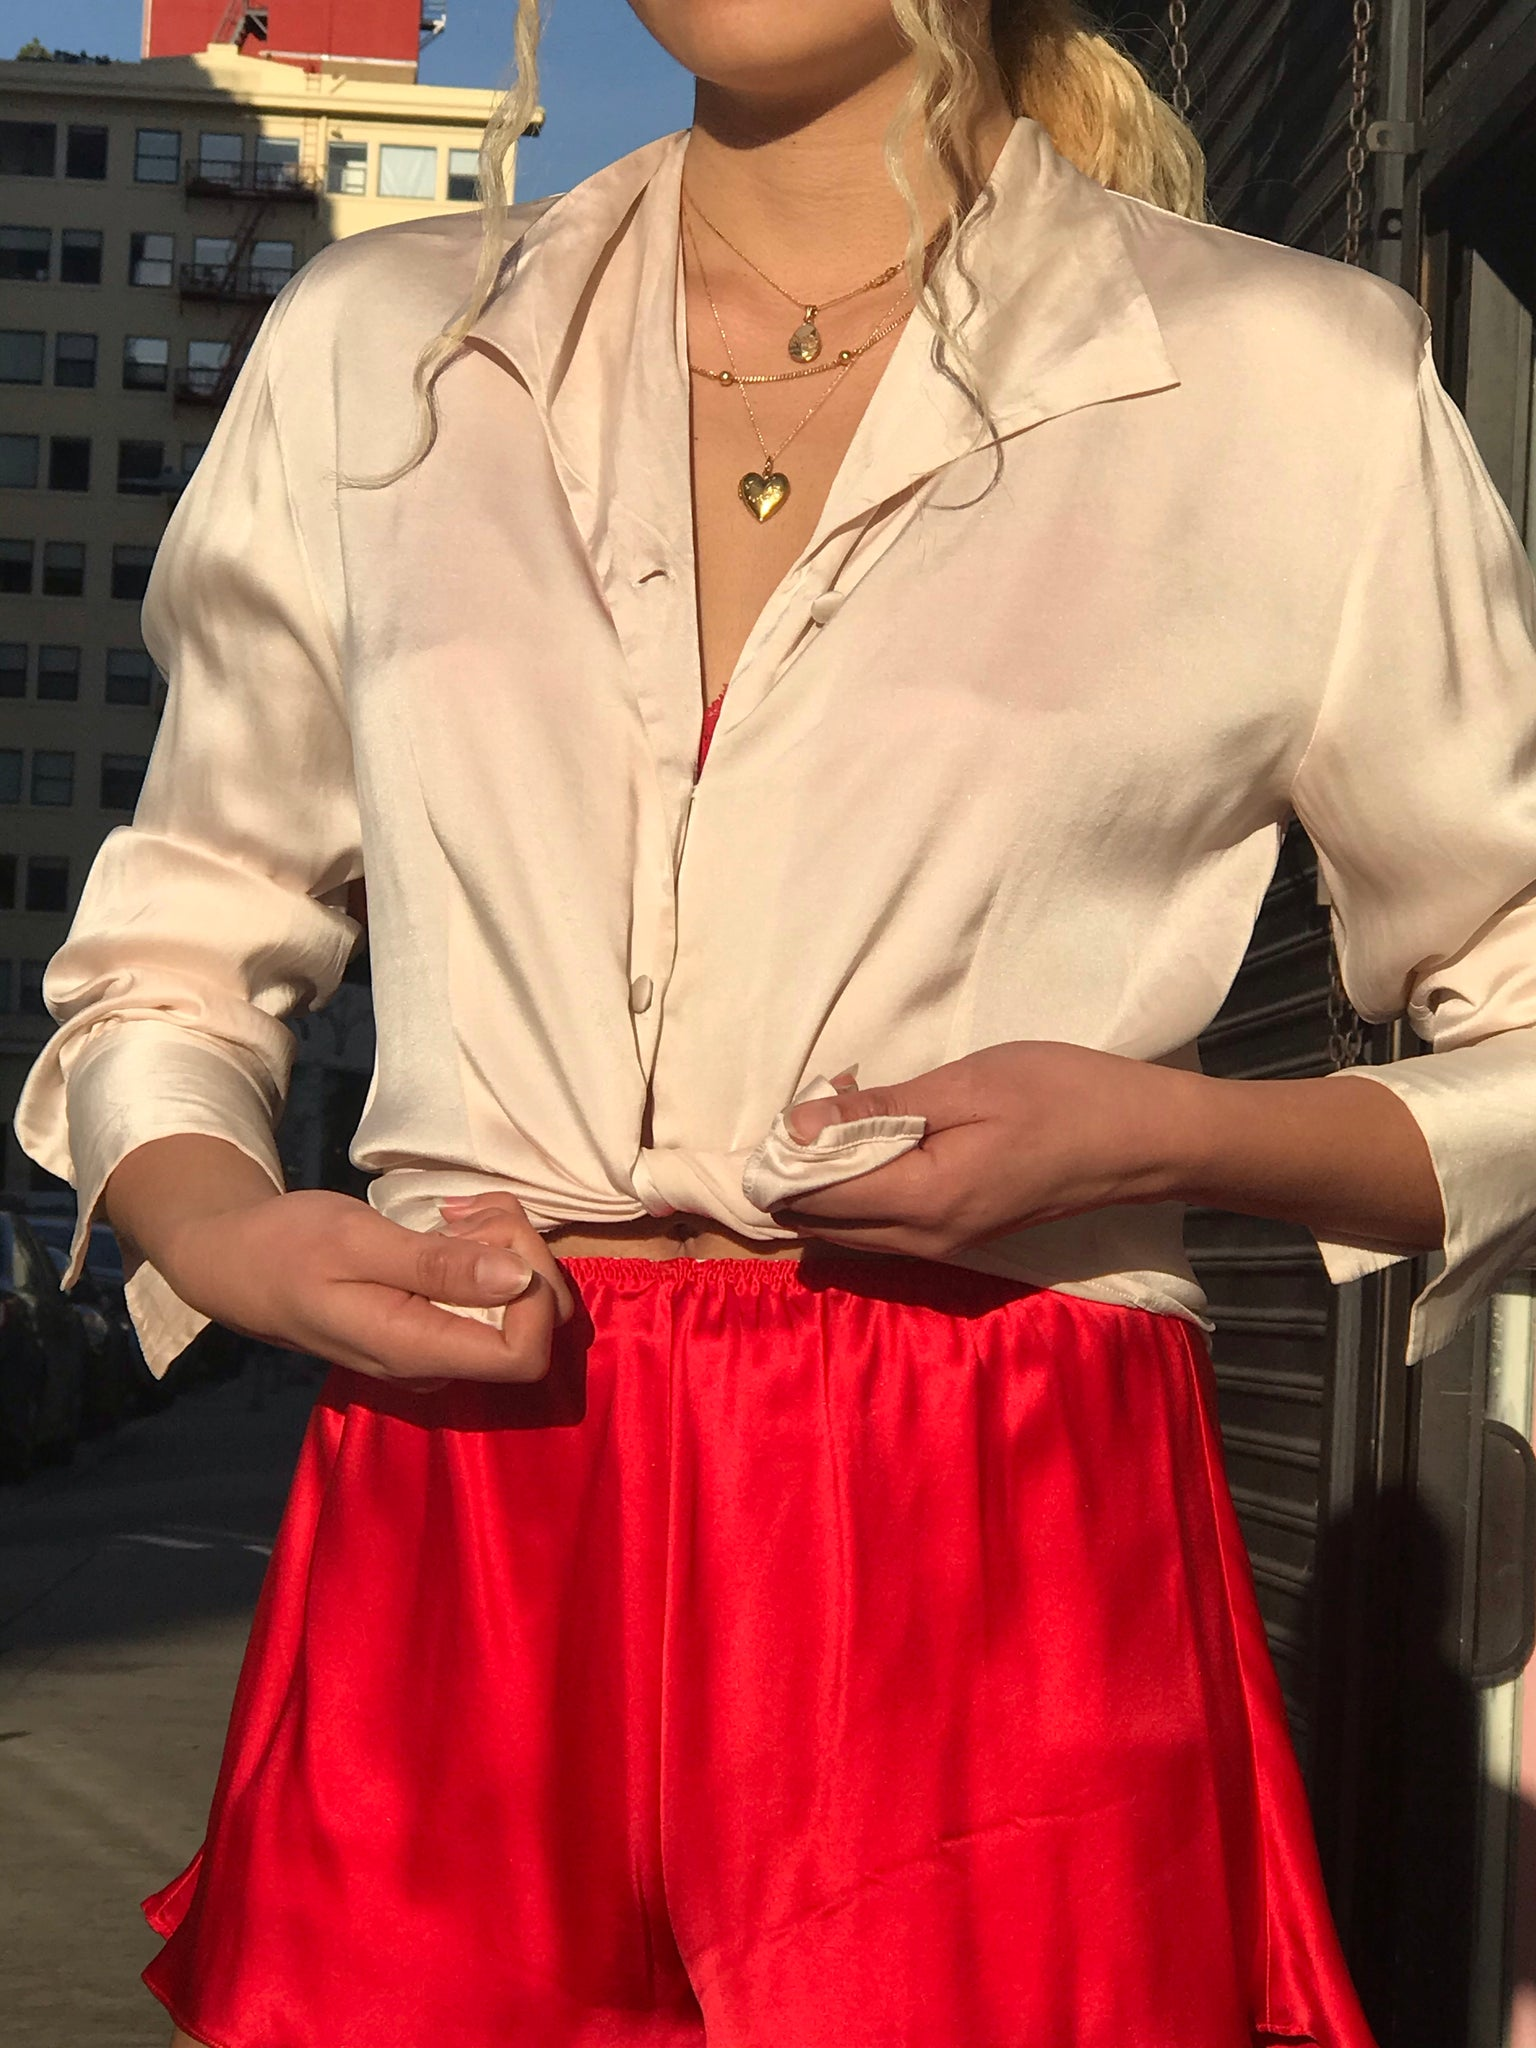 Blush Satin Silk Blouse From France - Size Small